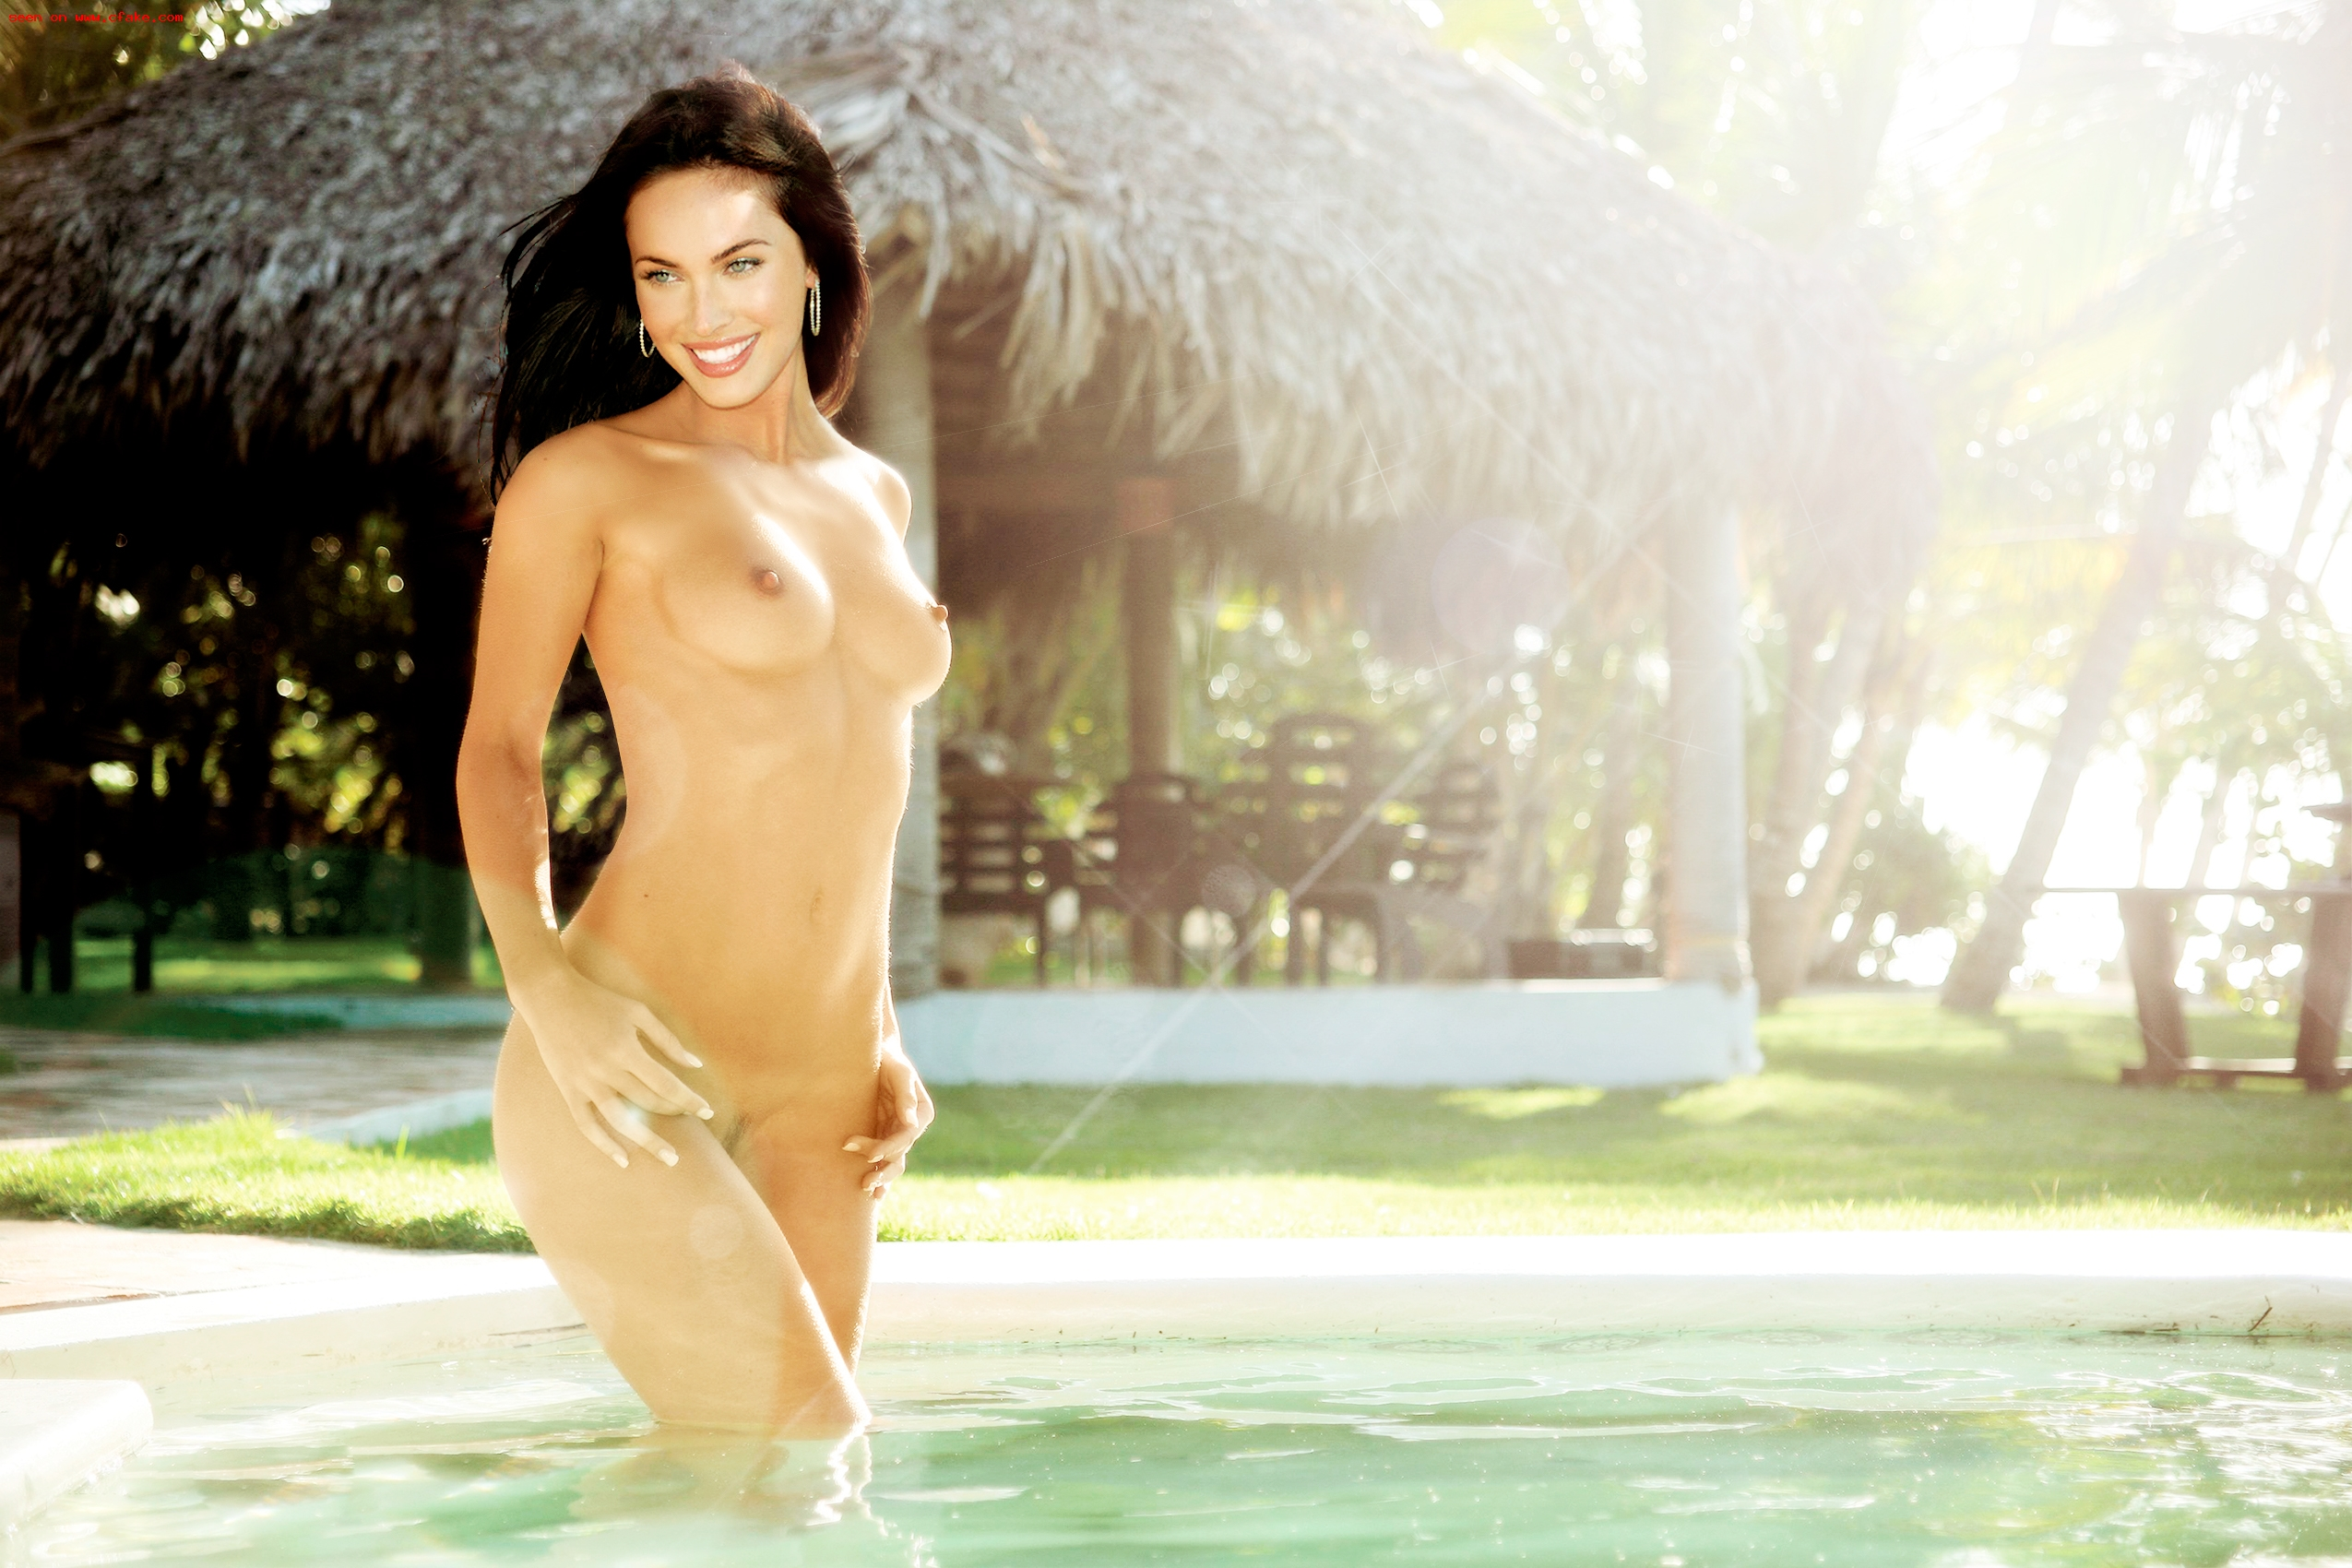 Megan fox stripped and hot erotic photos of celebrities and sexy actresses